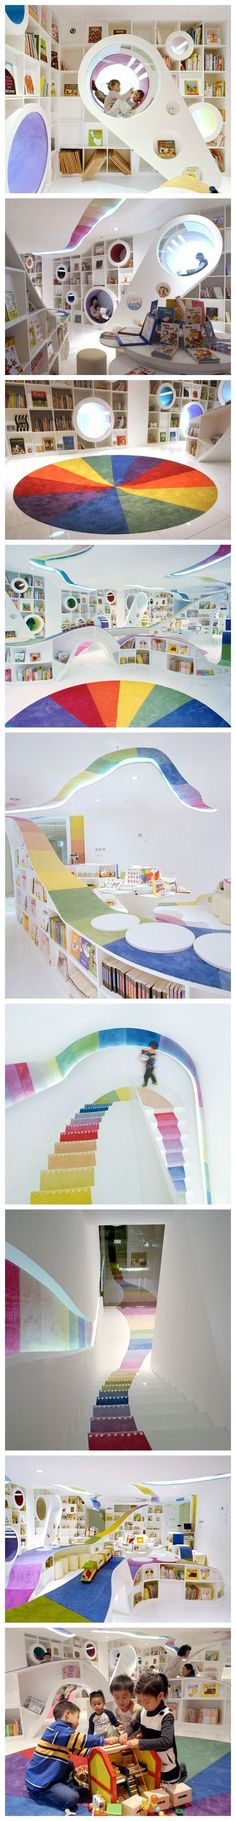 【儿童书店,北京,designed by SAKO ,Bookstore for children in Beijin,China: